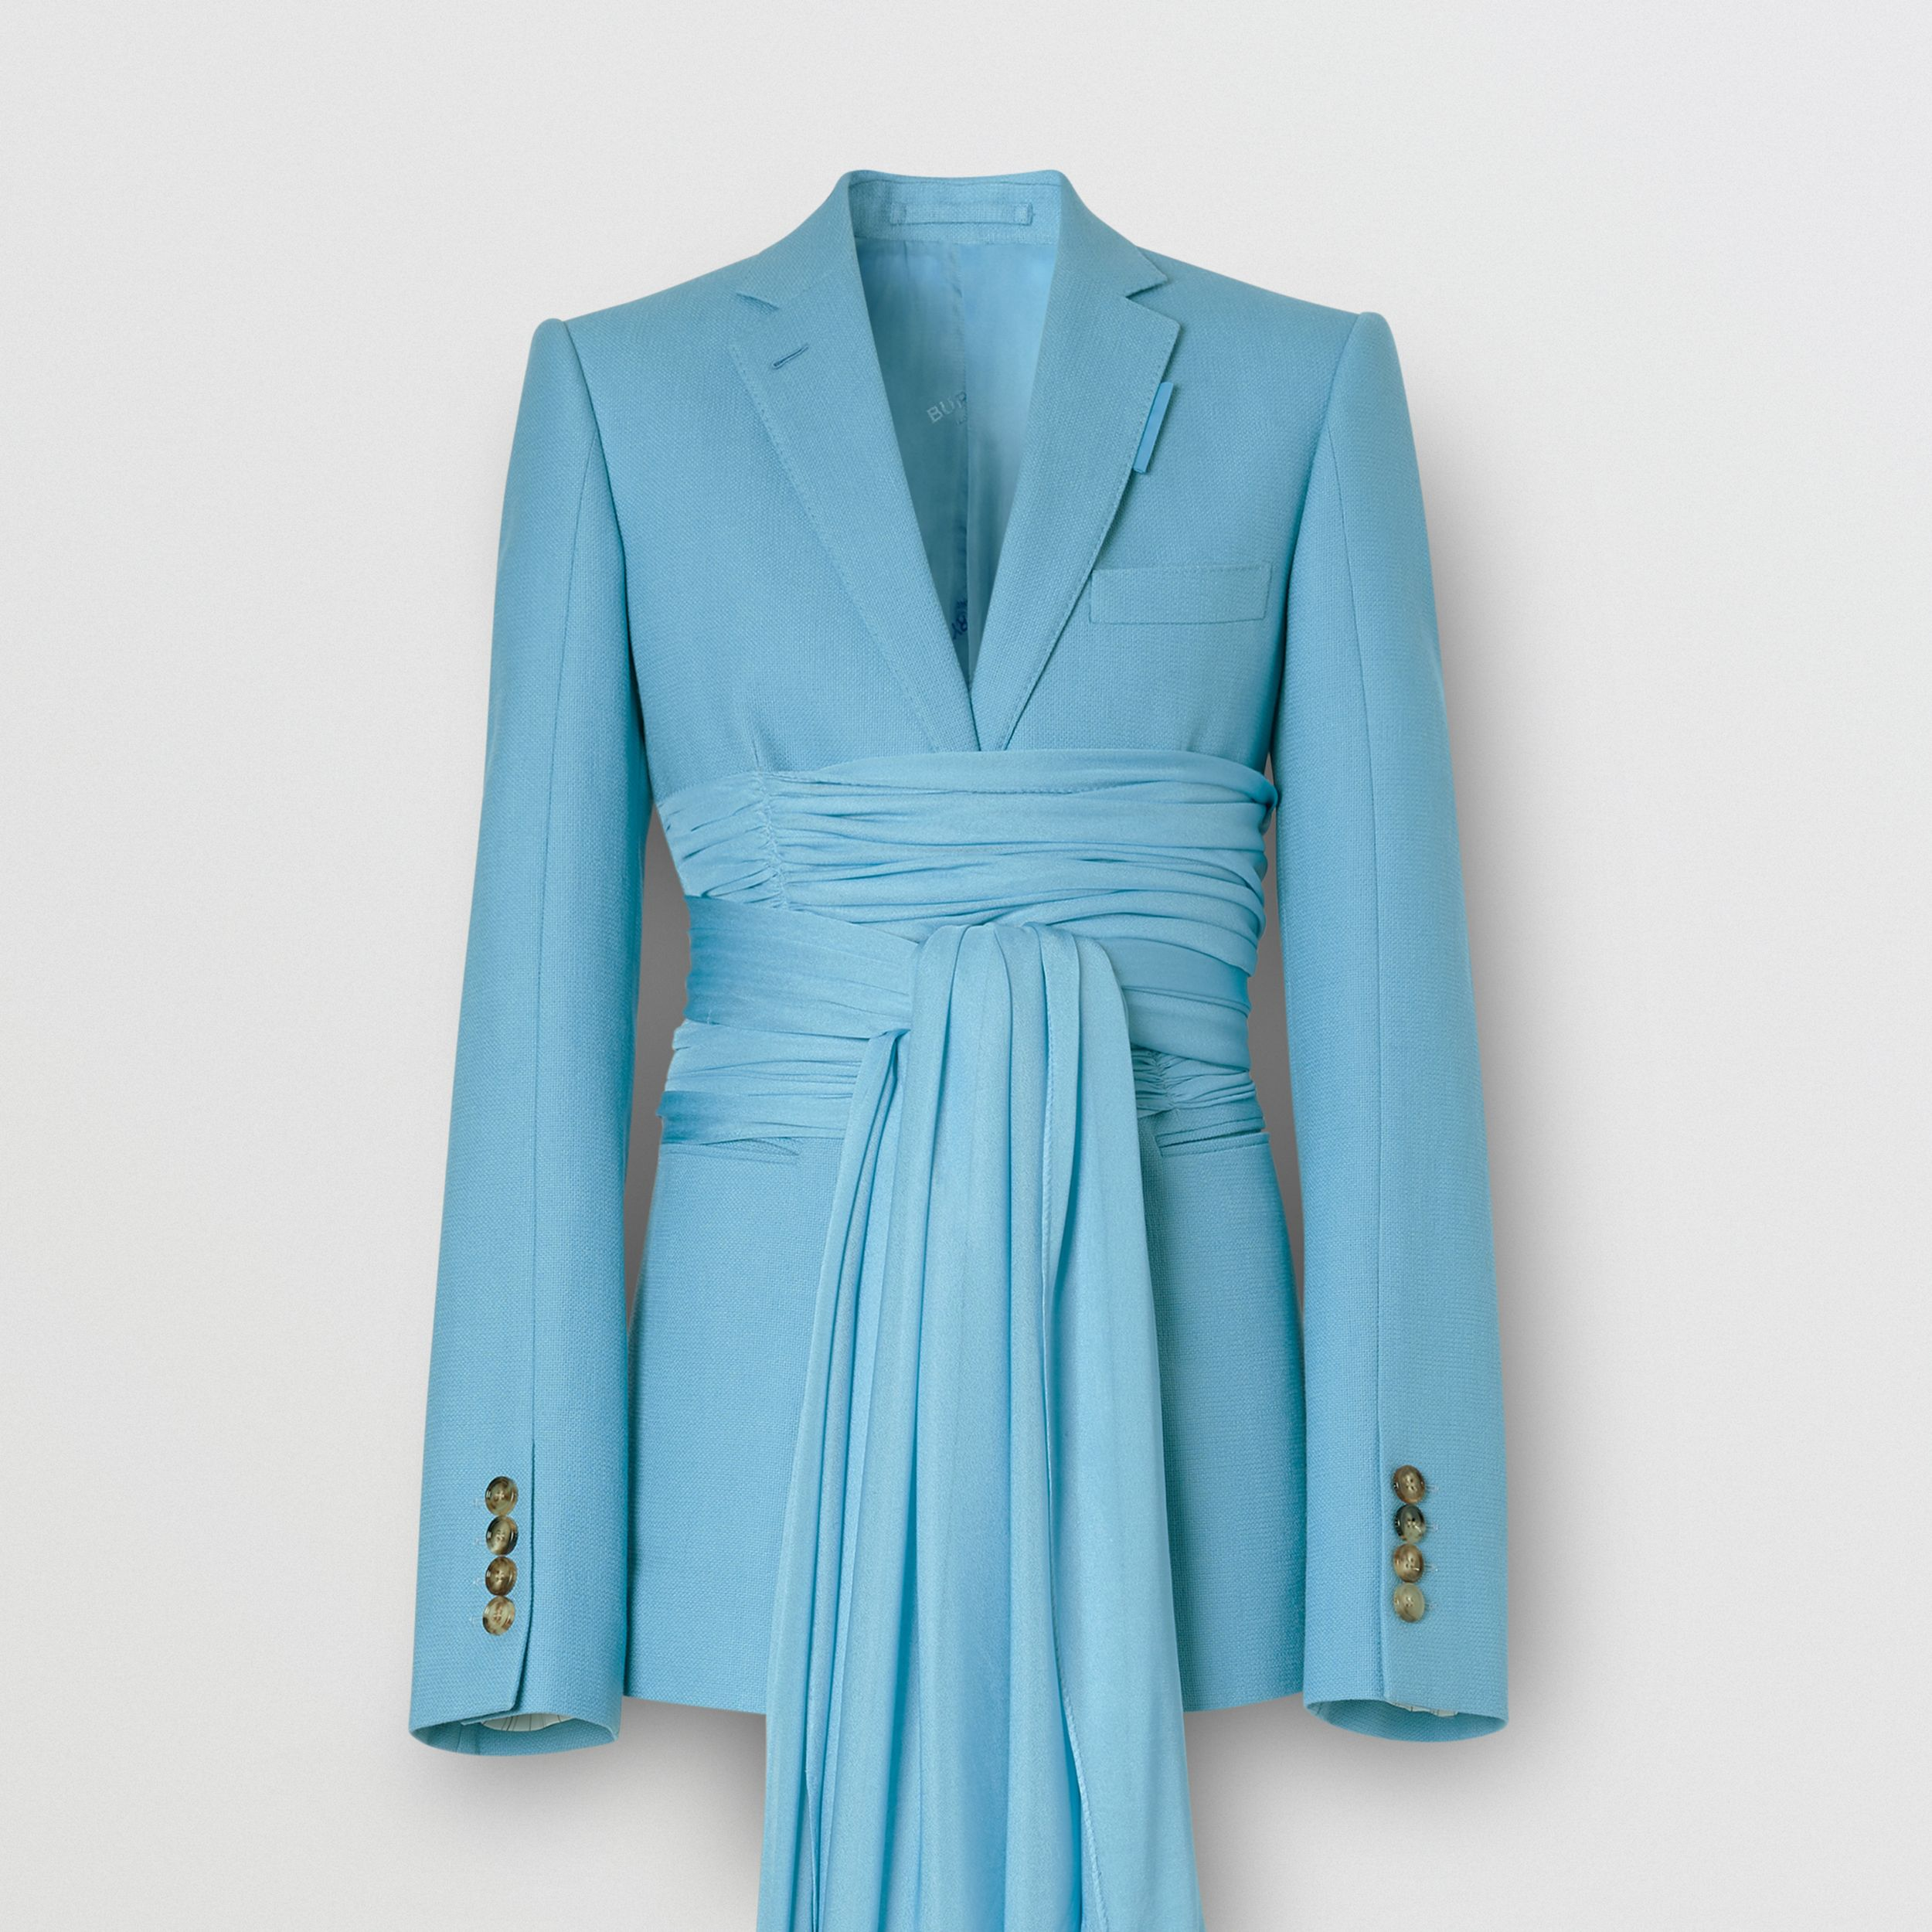 Jersey Sash Detail Wool Ramie Tailored Jacket in Blue Topaz - Women | Burberry United States - 4